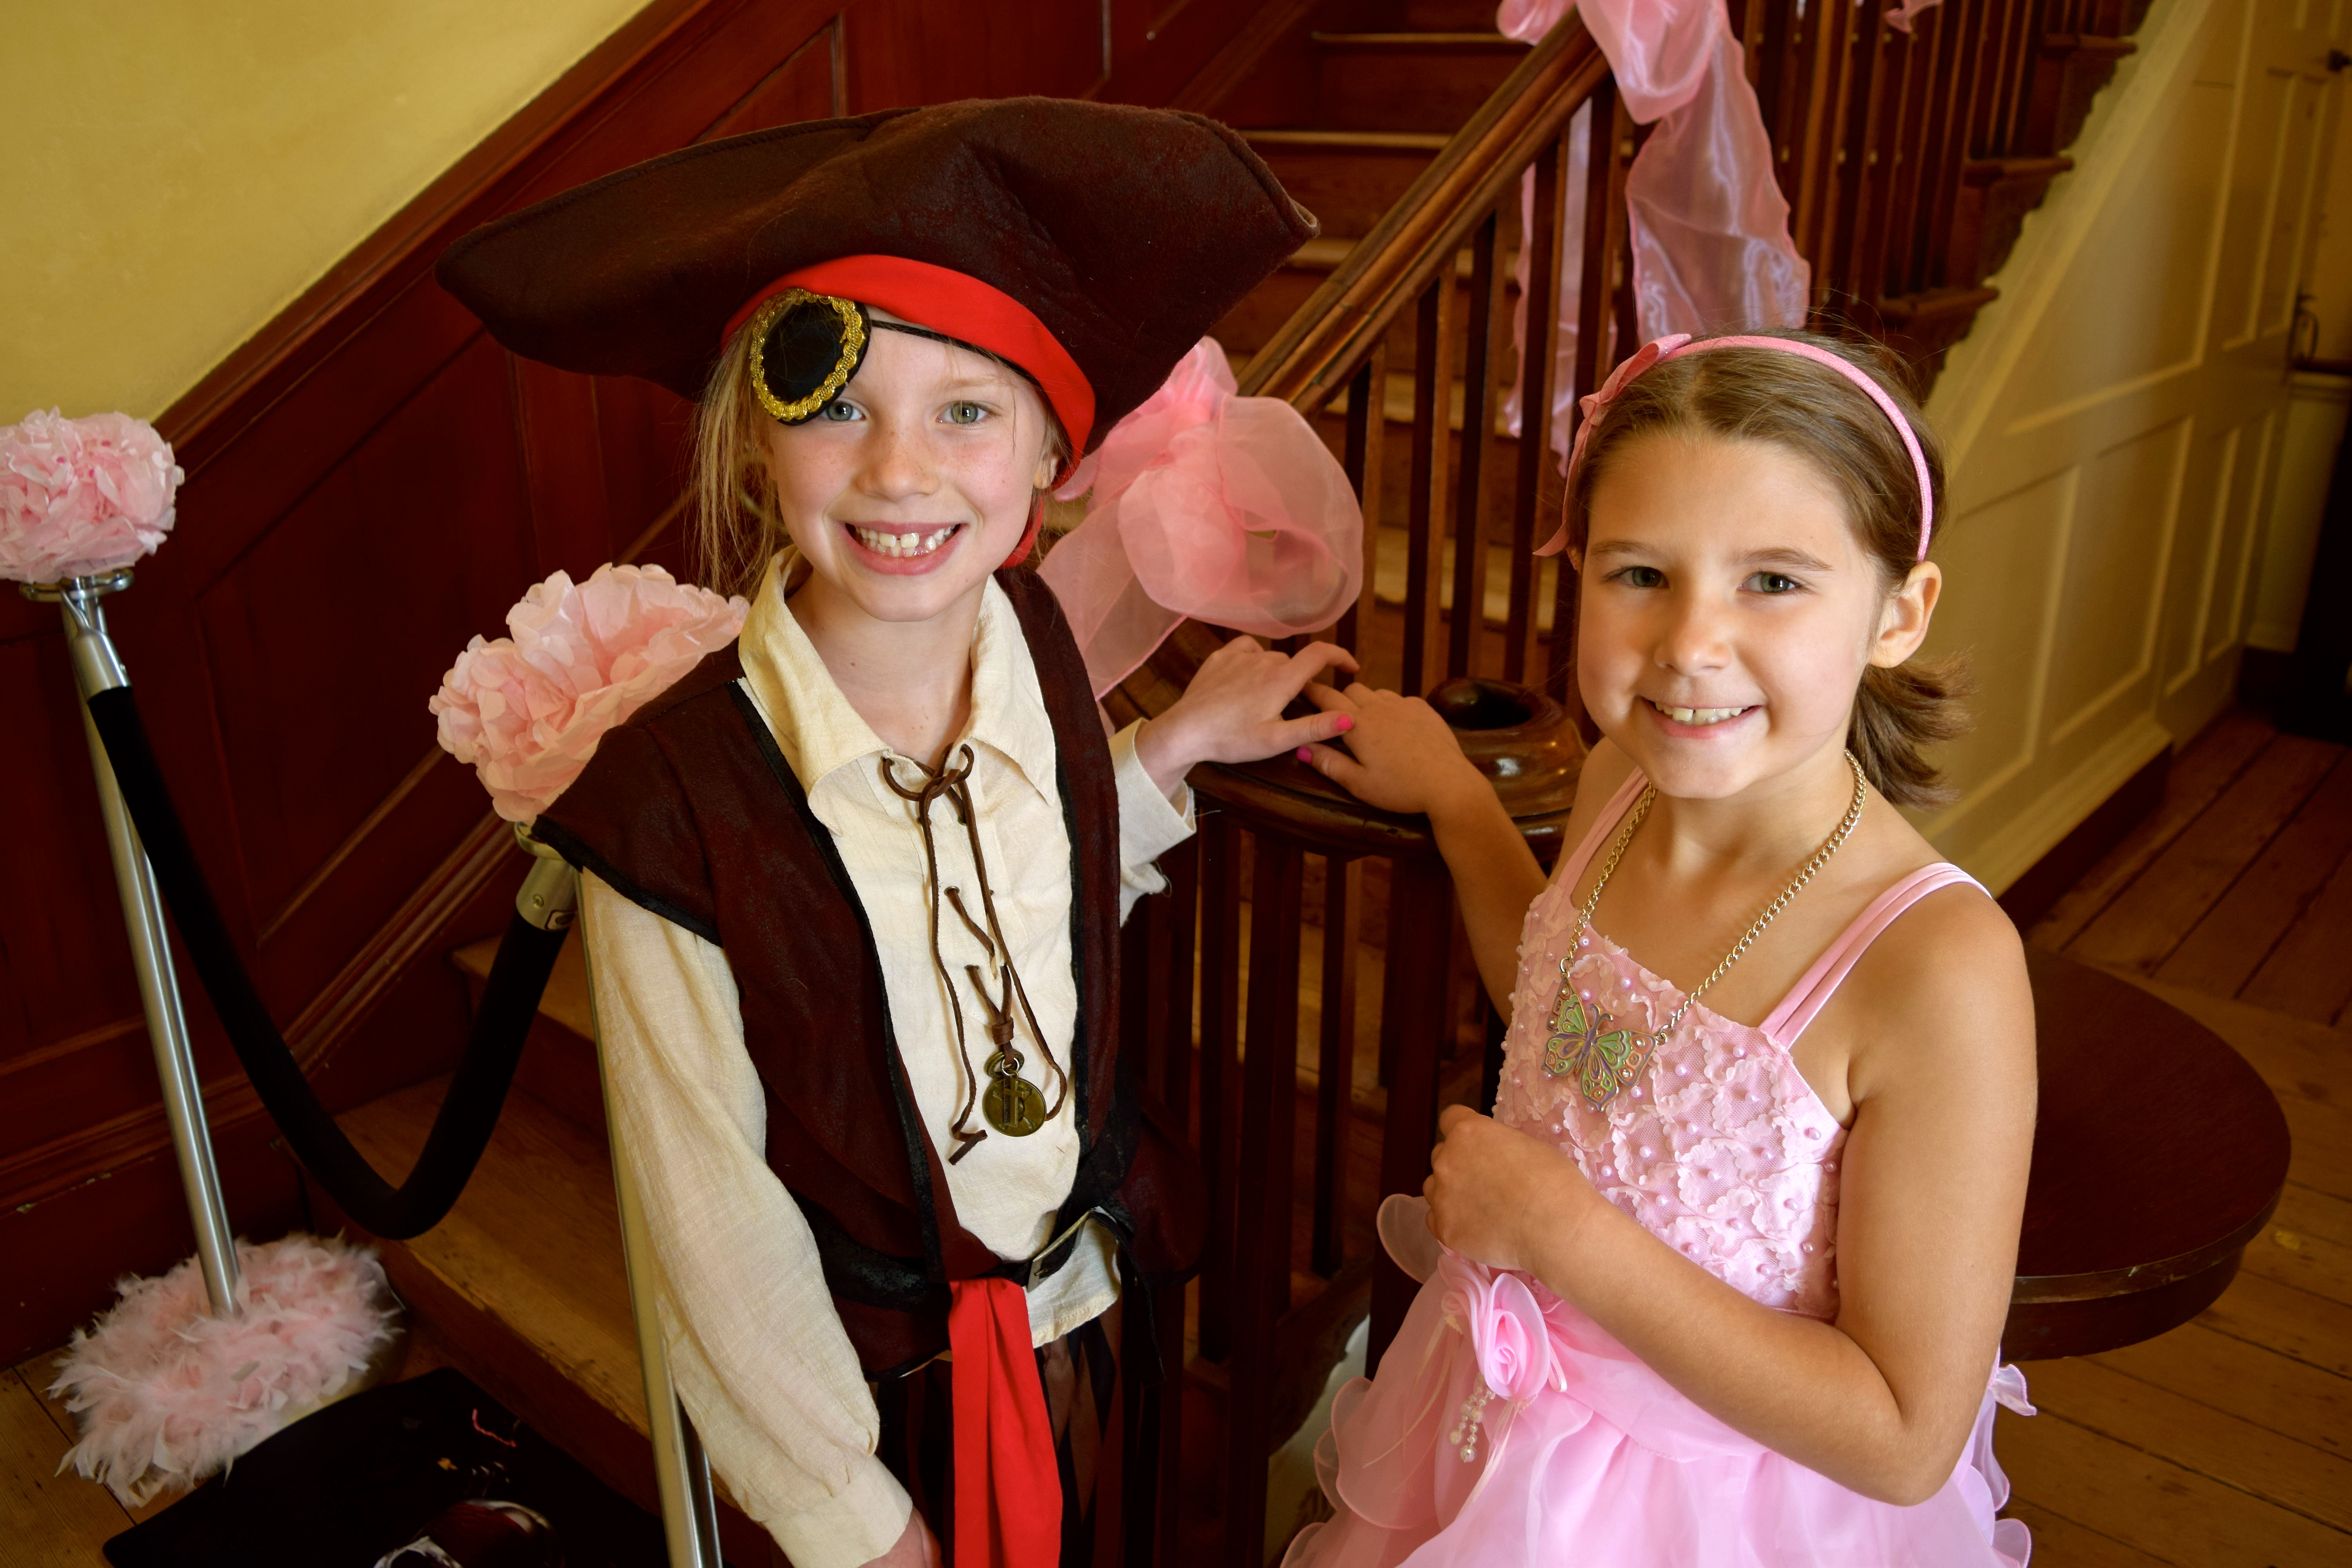 Princess and Pirate Tea Party